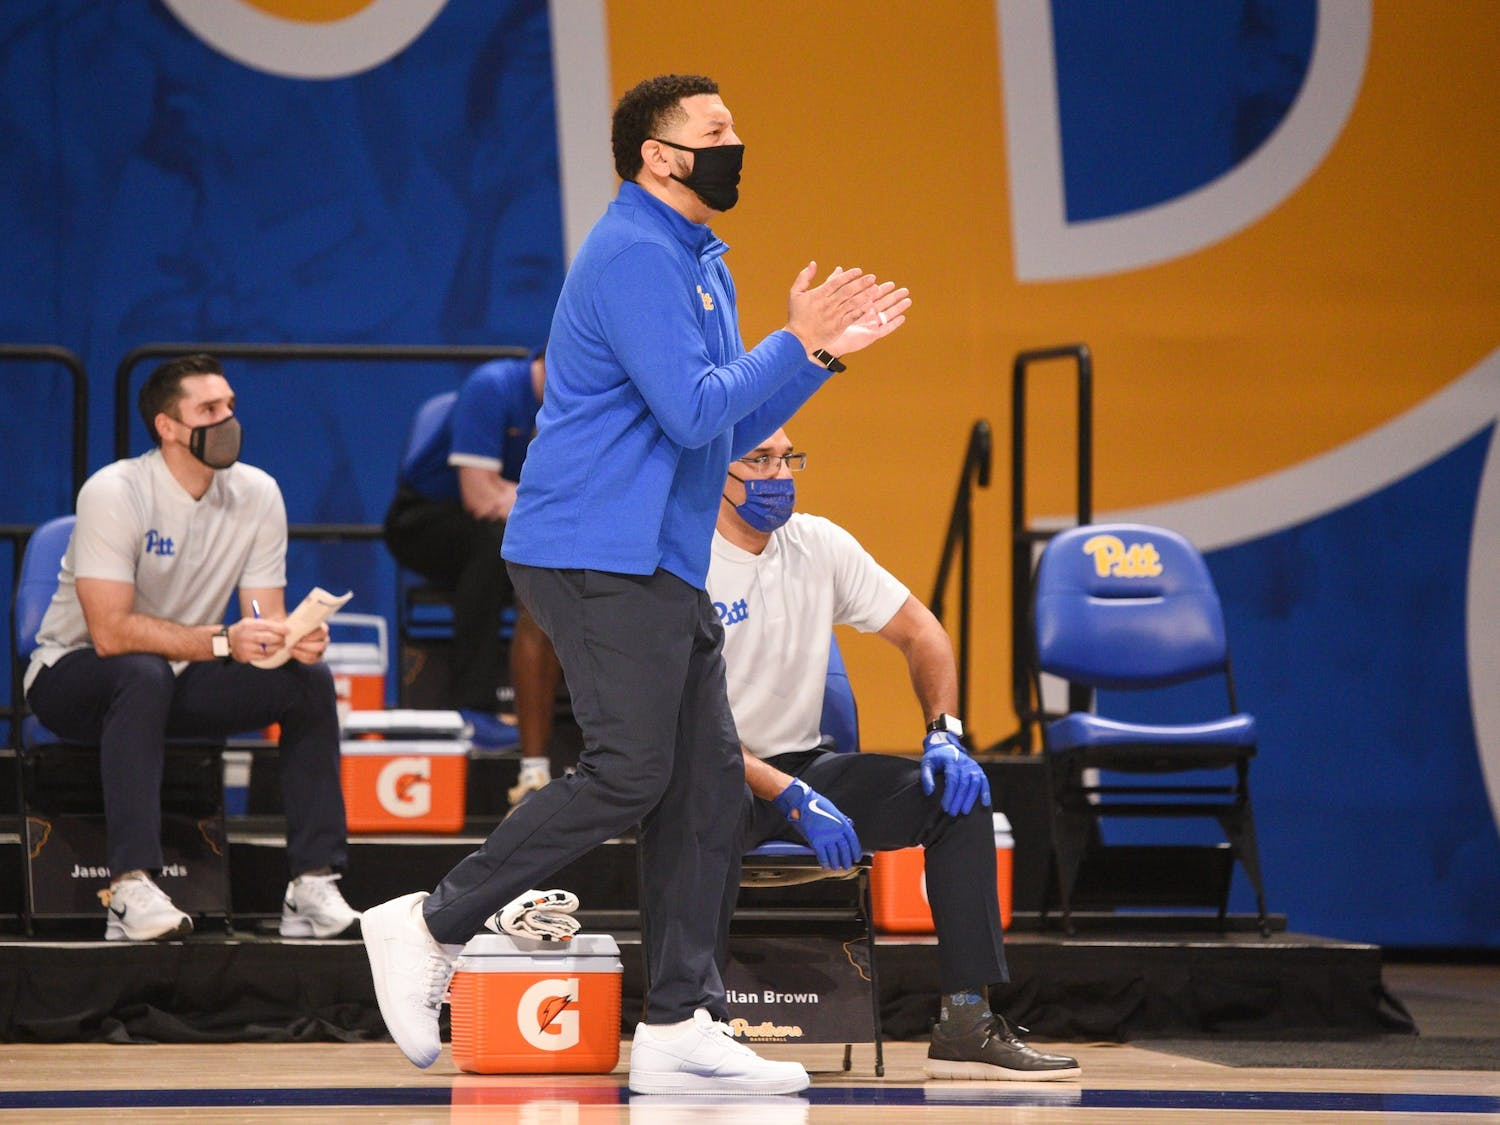 Capel has turned around a Pittsburgh program that was among the worst in the country before he took over.